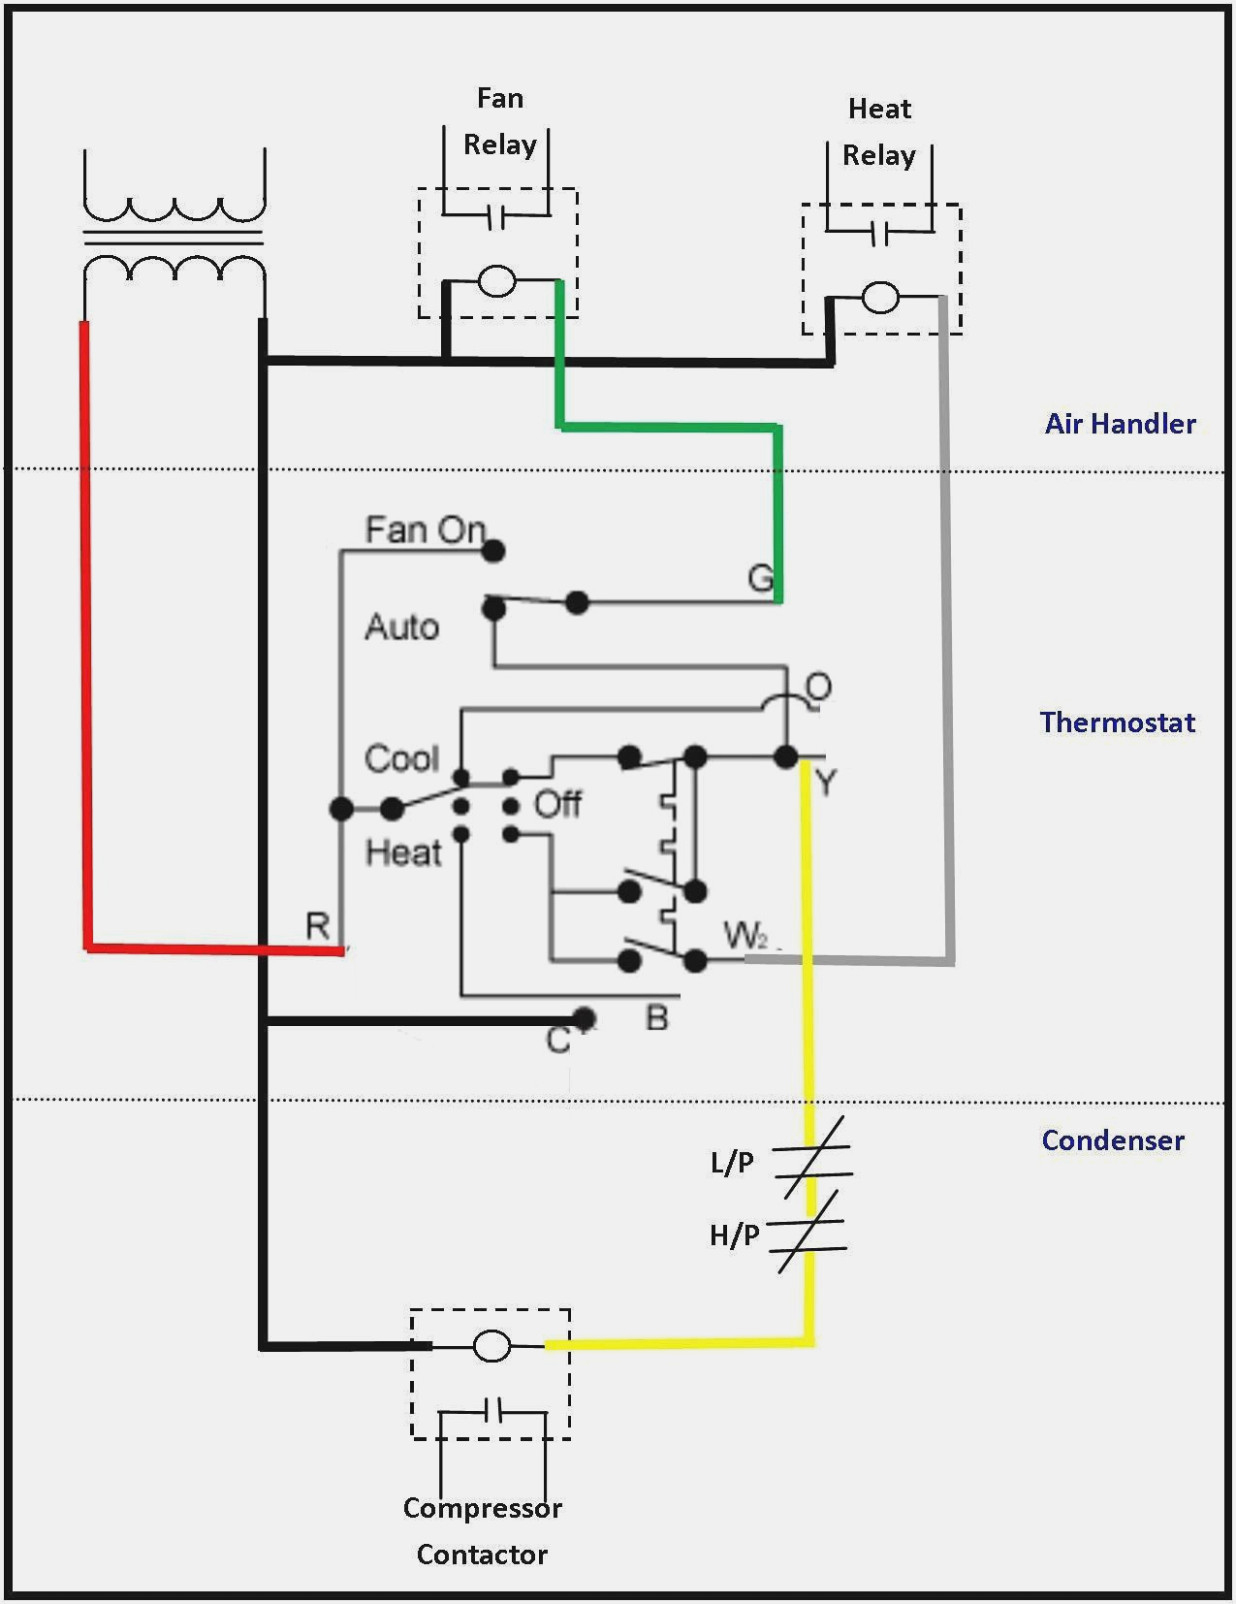 [DIAGRAM_09CH]  Oil Fired Furnace Wiring Diagram - Wiring Diagrams | Wiring Diagram Oil Furnace |  | dog.iron.lesvignoblesguimberteau.fr